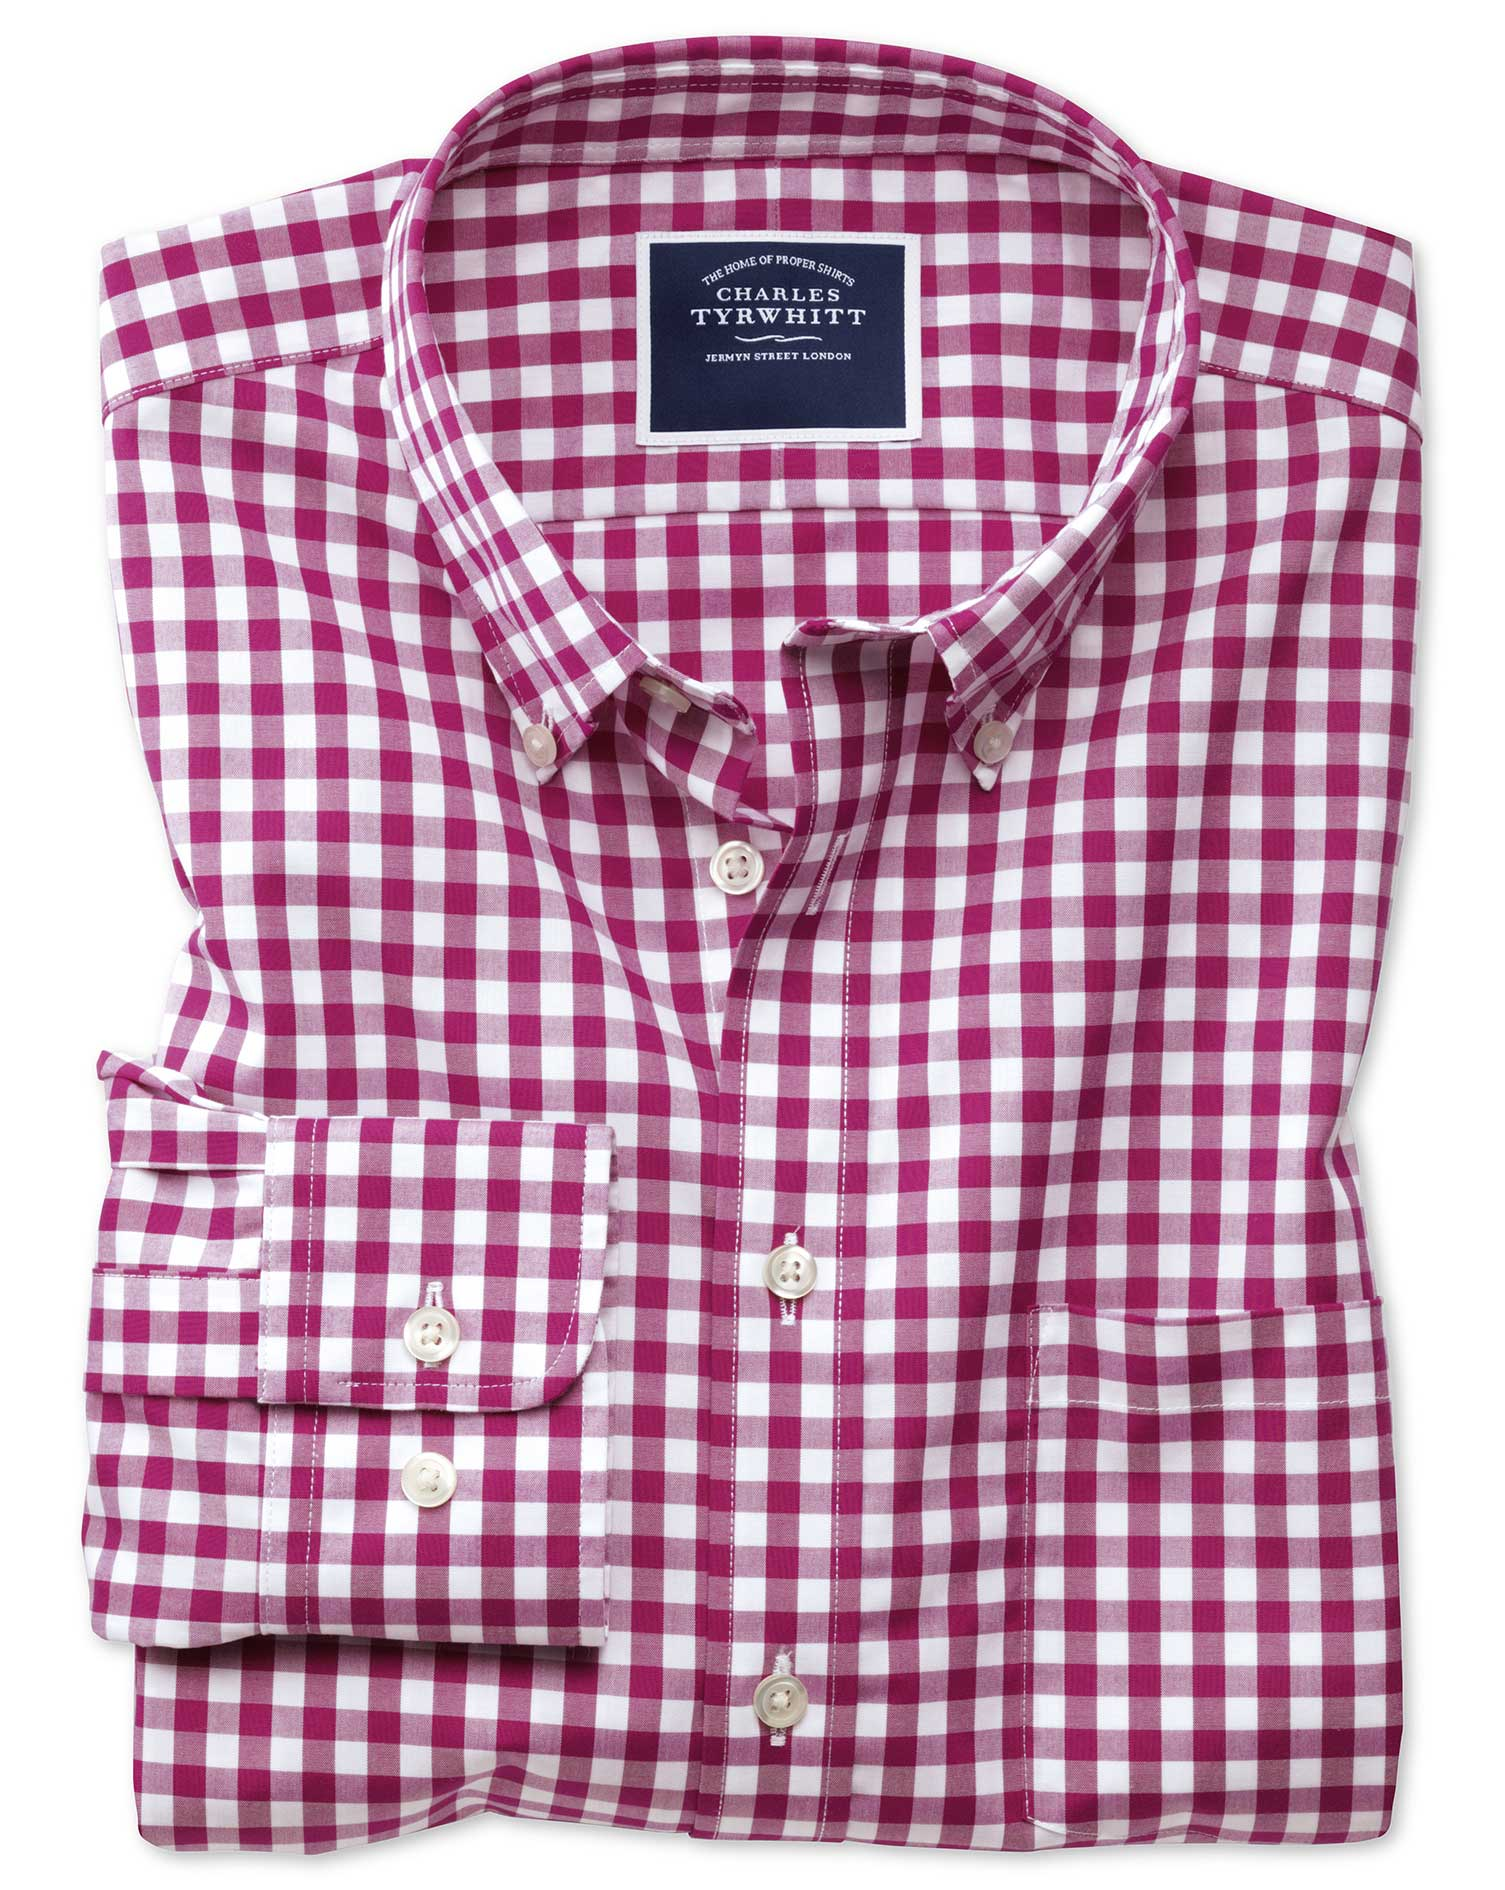 Extra Slim Fit Button-Down Non-Iron Poplin Red Gingham Cotton Shirt Single Cuff Size XL by Charles T